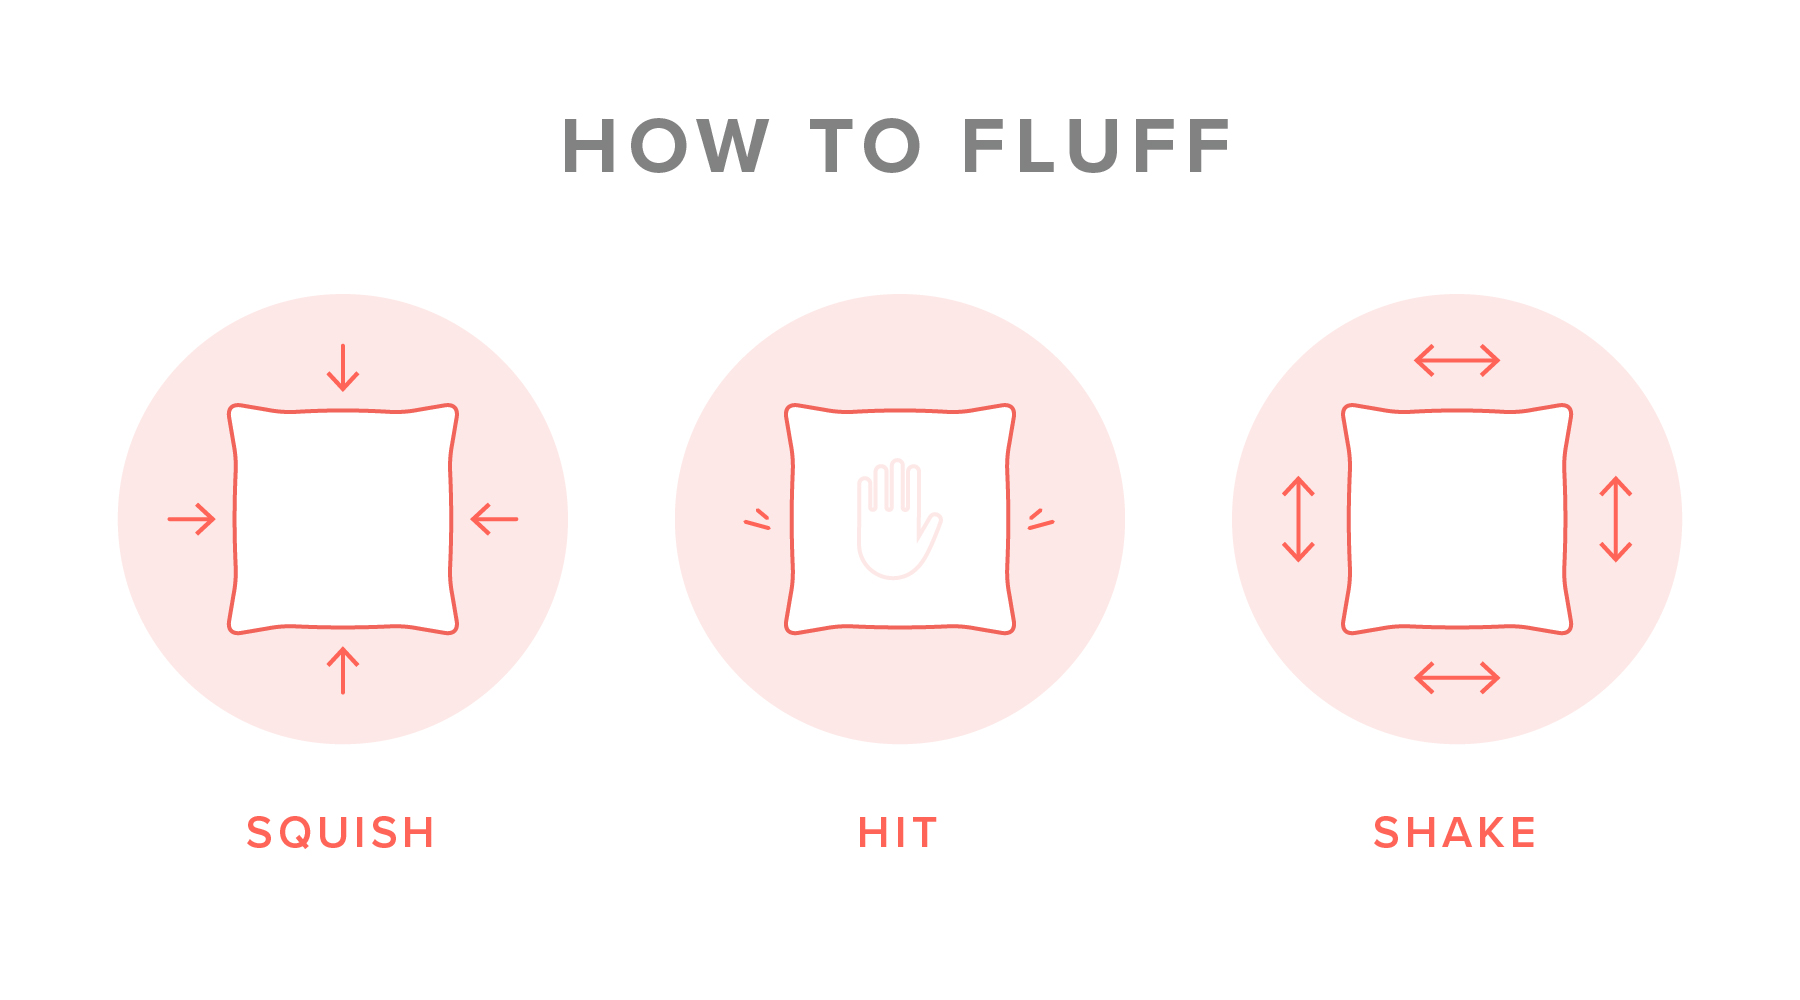 Image showing how to fluff pillows